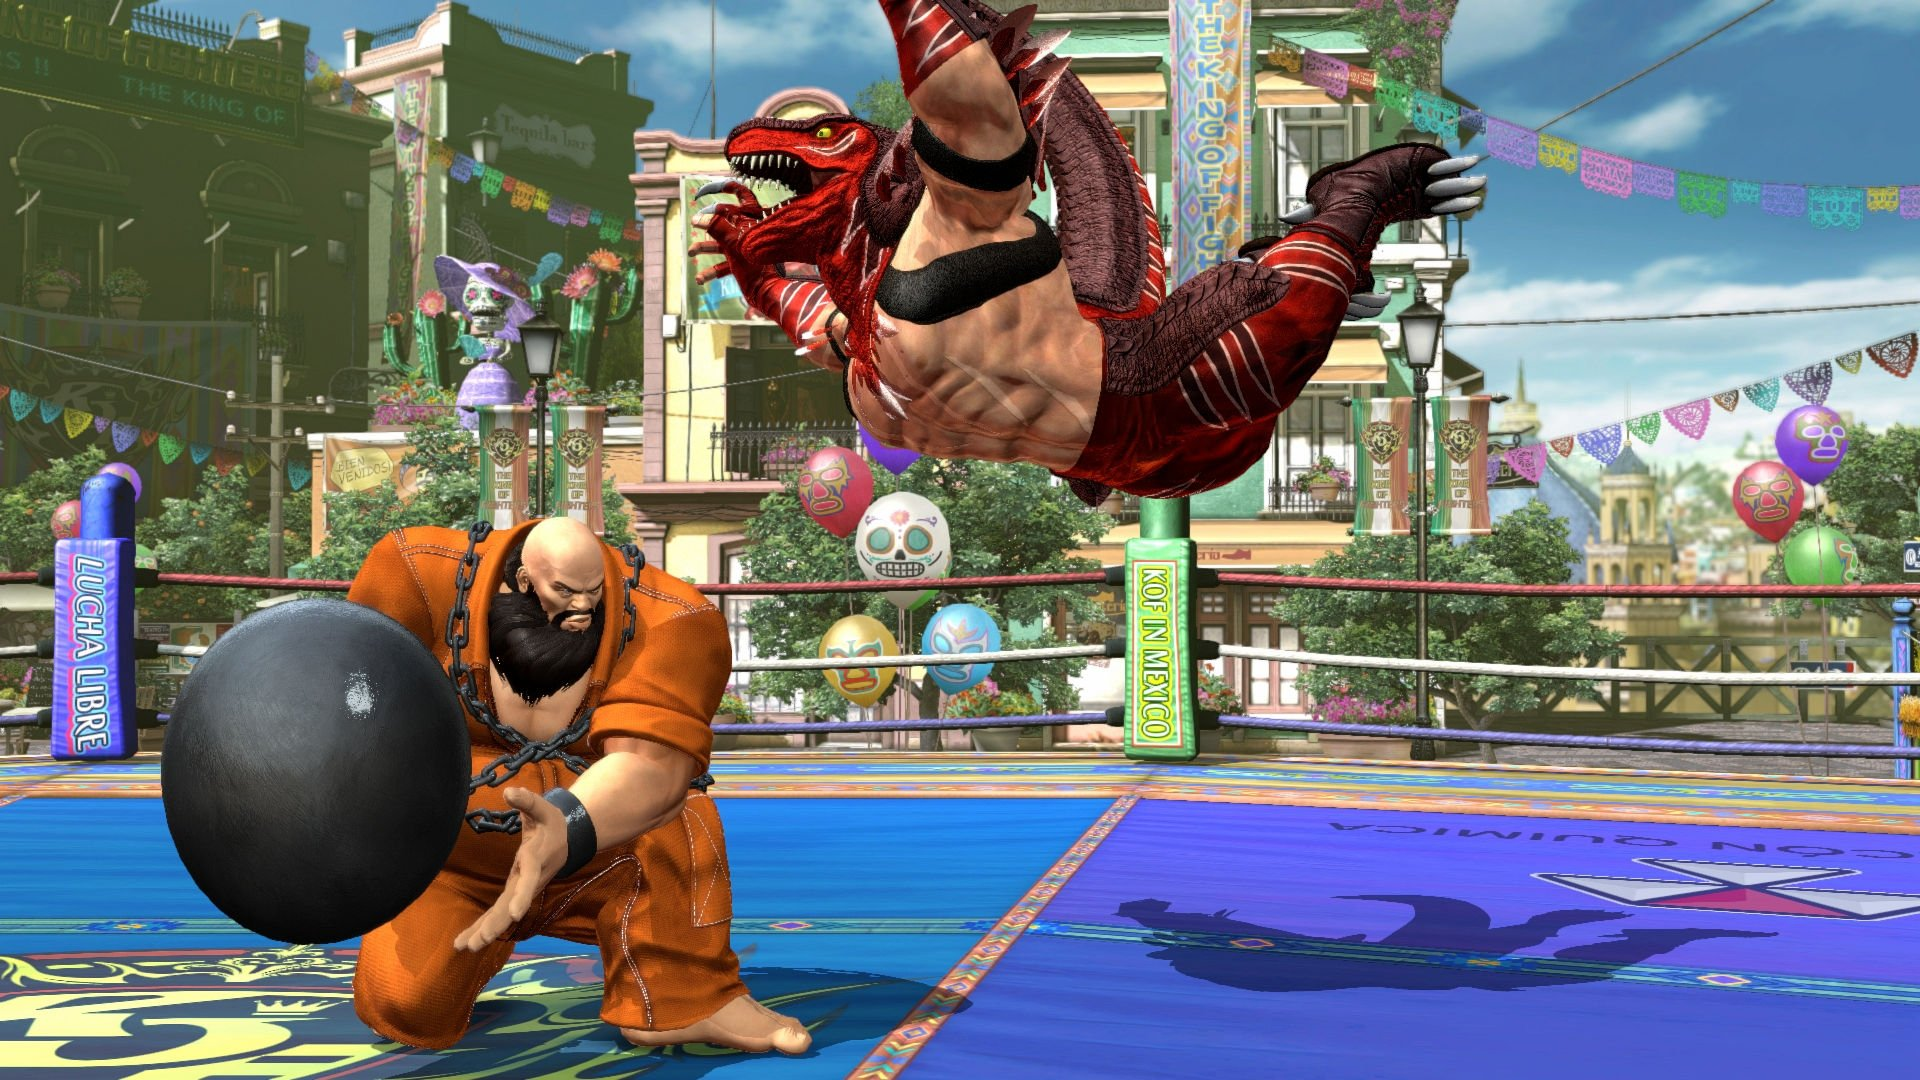 king_of_fighters_xiv-3371187.jpg